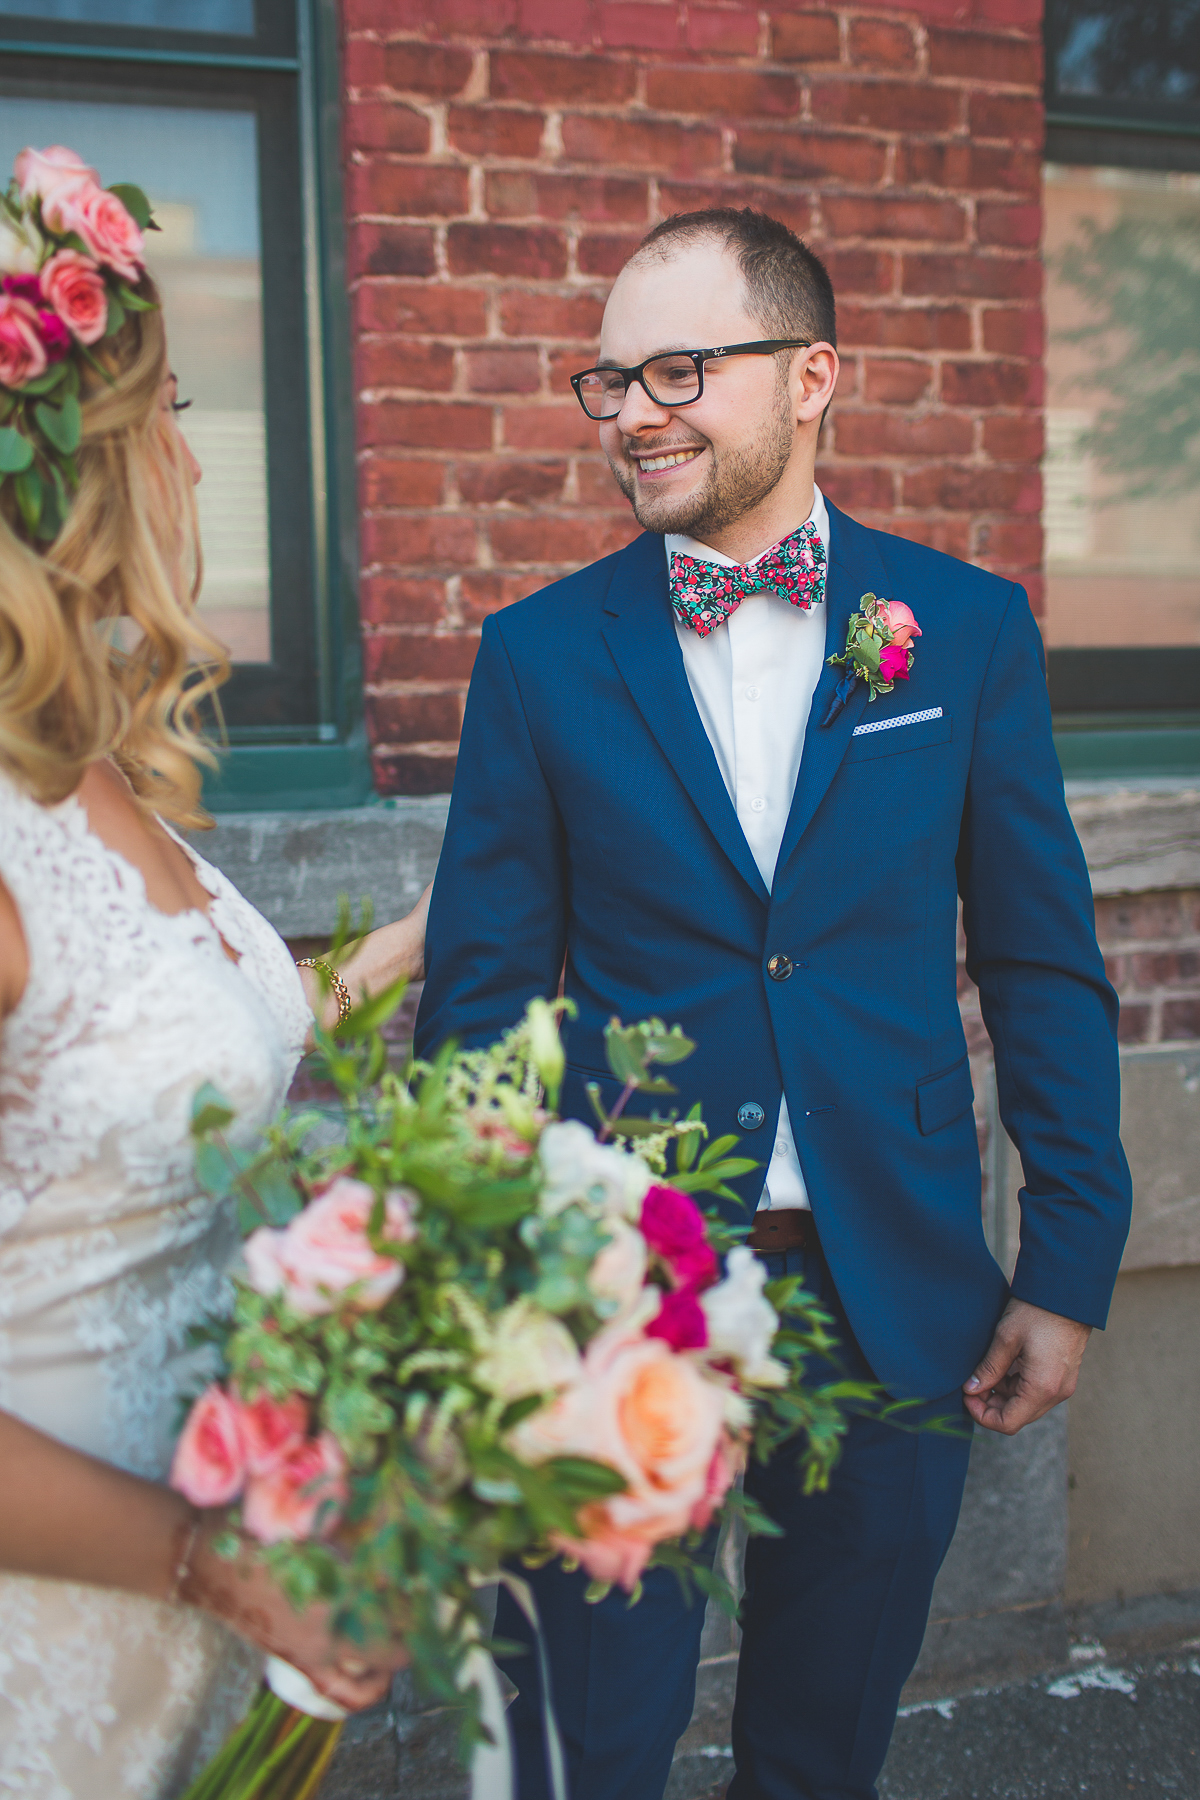 mariage-soupesoup-montreal-photographe-wedding-boheme_firstlook-groom-bride_16